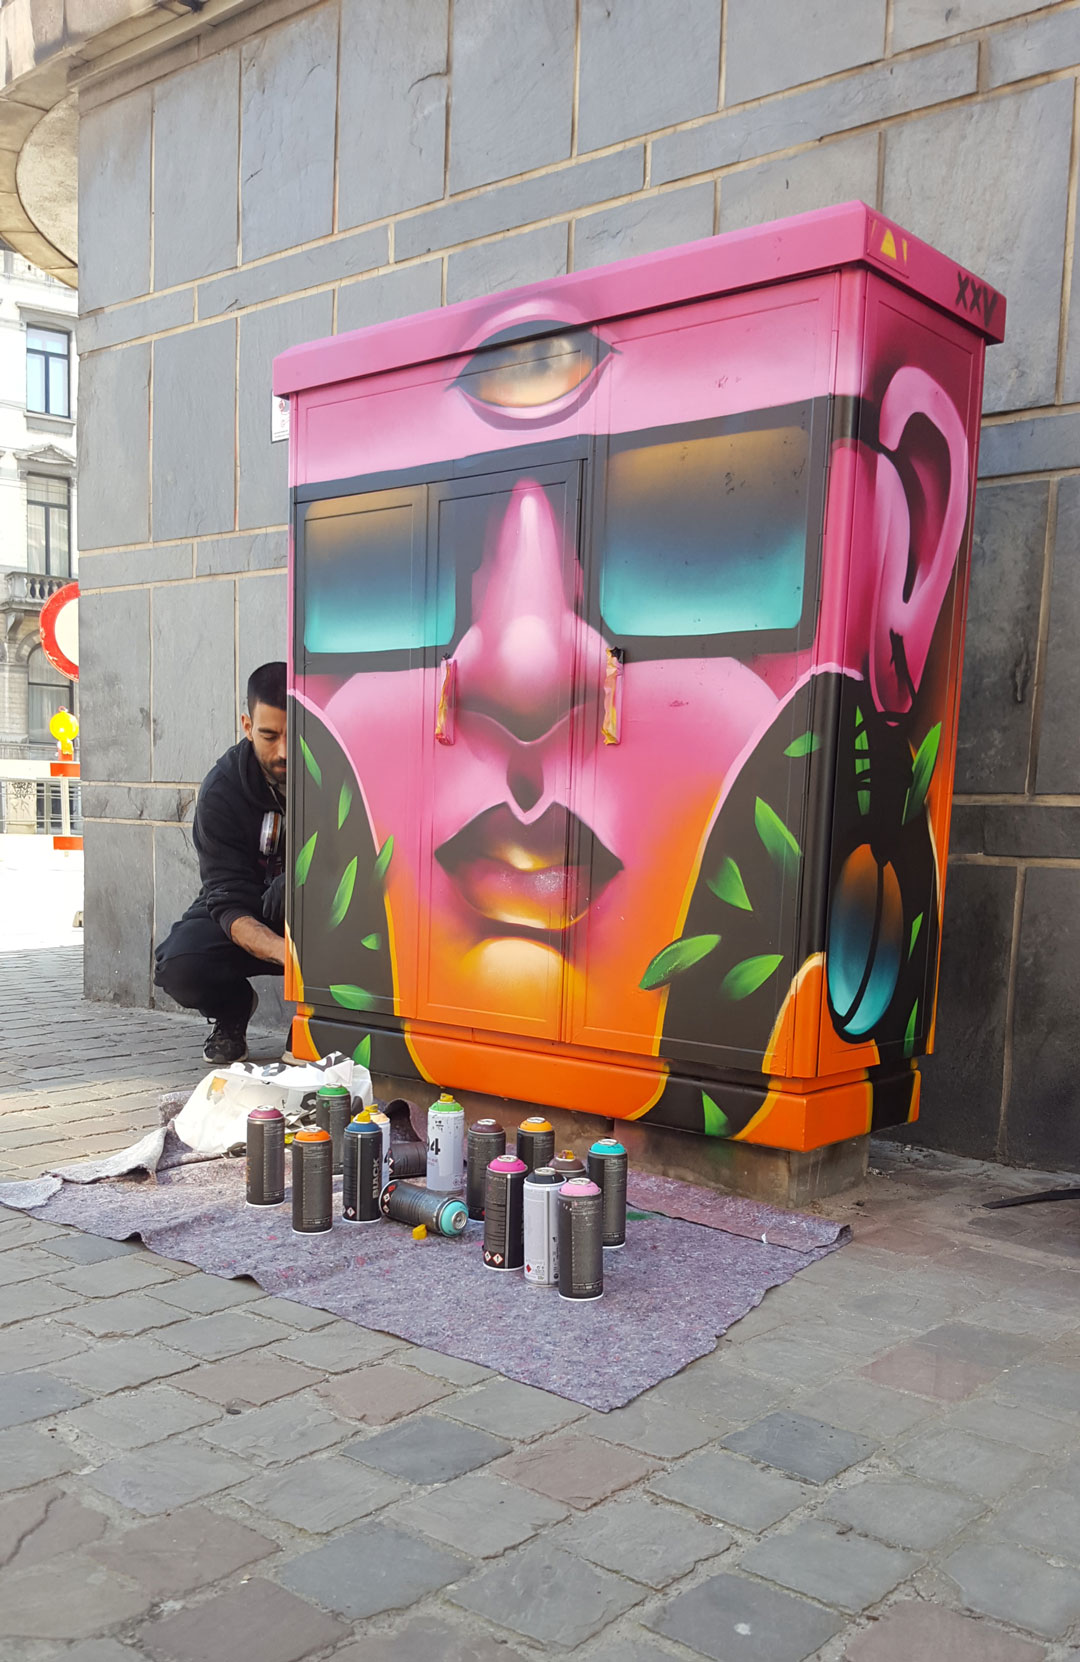 https://www.propaganza.be/wp-content/uploads/2020/02/Customisation-de-mobilier-urbain-_-artiste-DAKE-_-Ixelles-copie.jpg